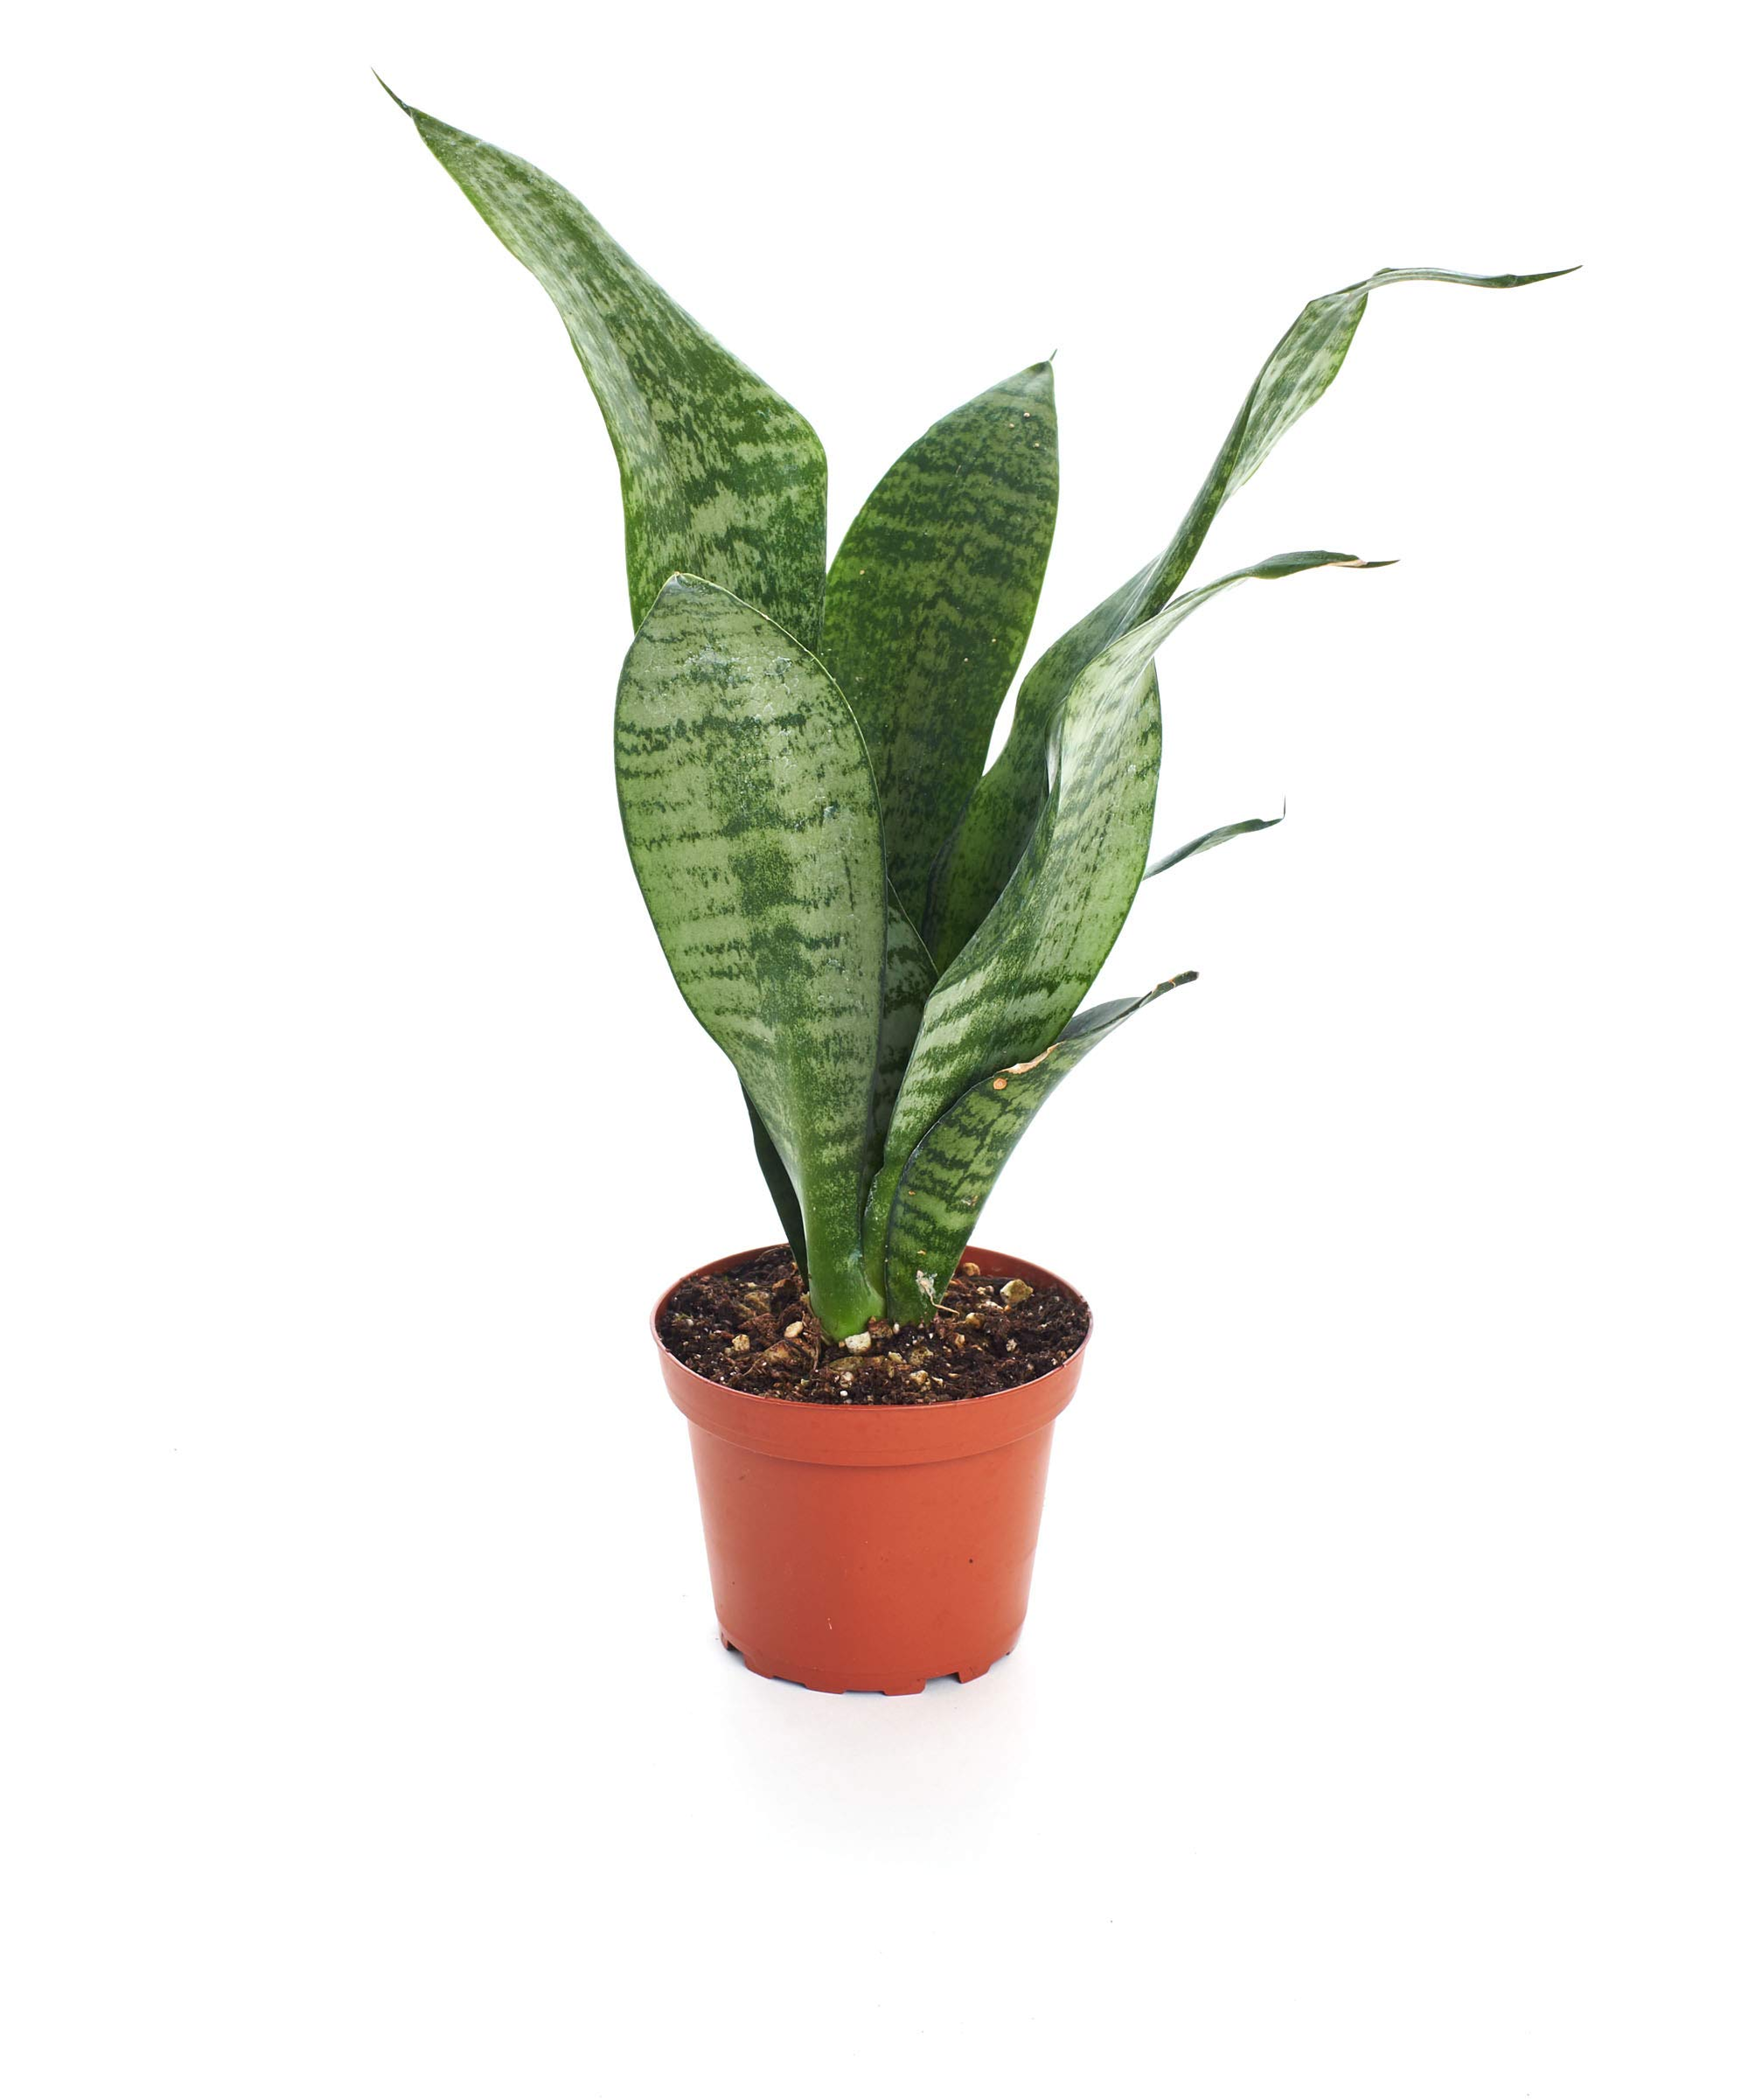 Shop Succulents Indoor Air Purifying - Live Sanseveria Robusta 4'' - Snake Plant, 1, Green